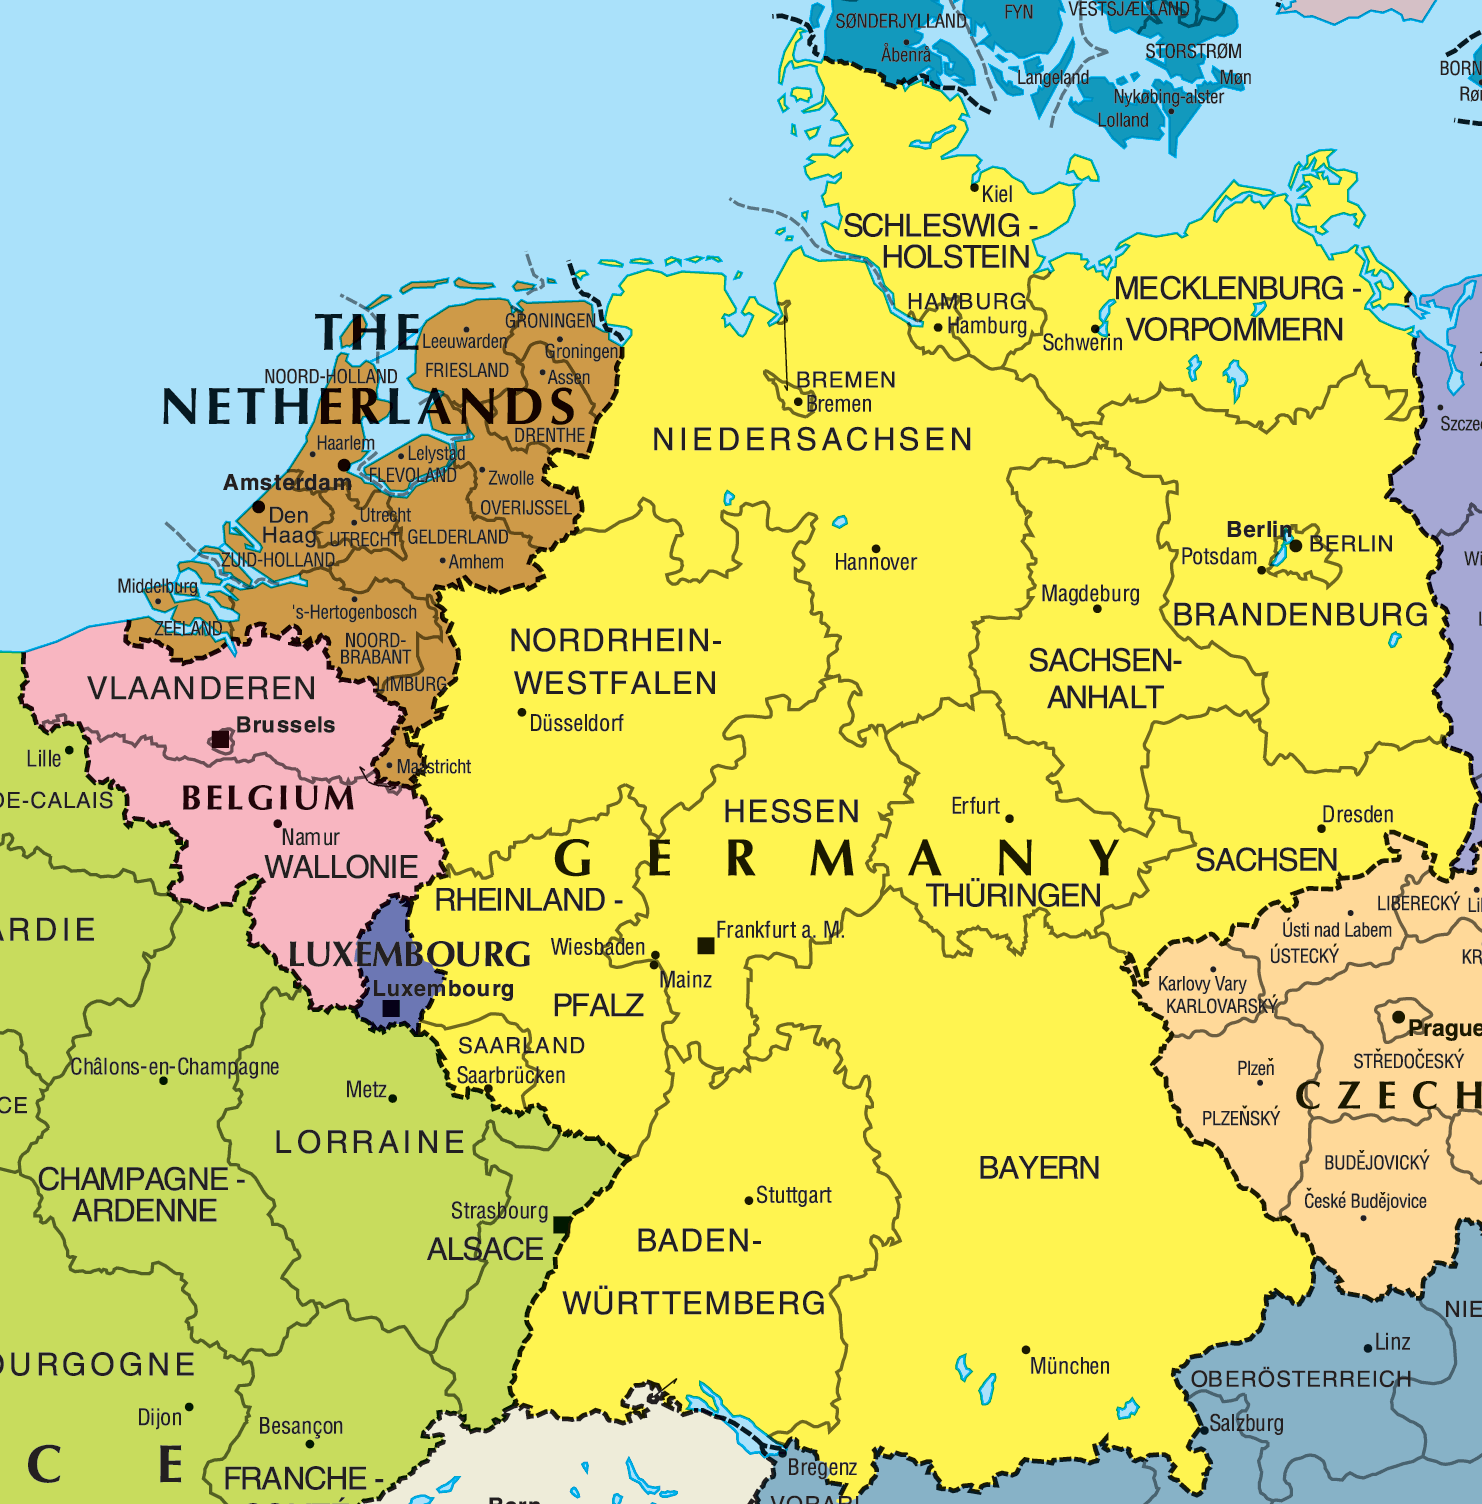 Map Of Belgium And Germany Germany And Belgium Map • Mapsof.net